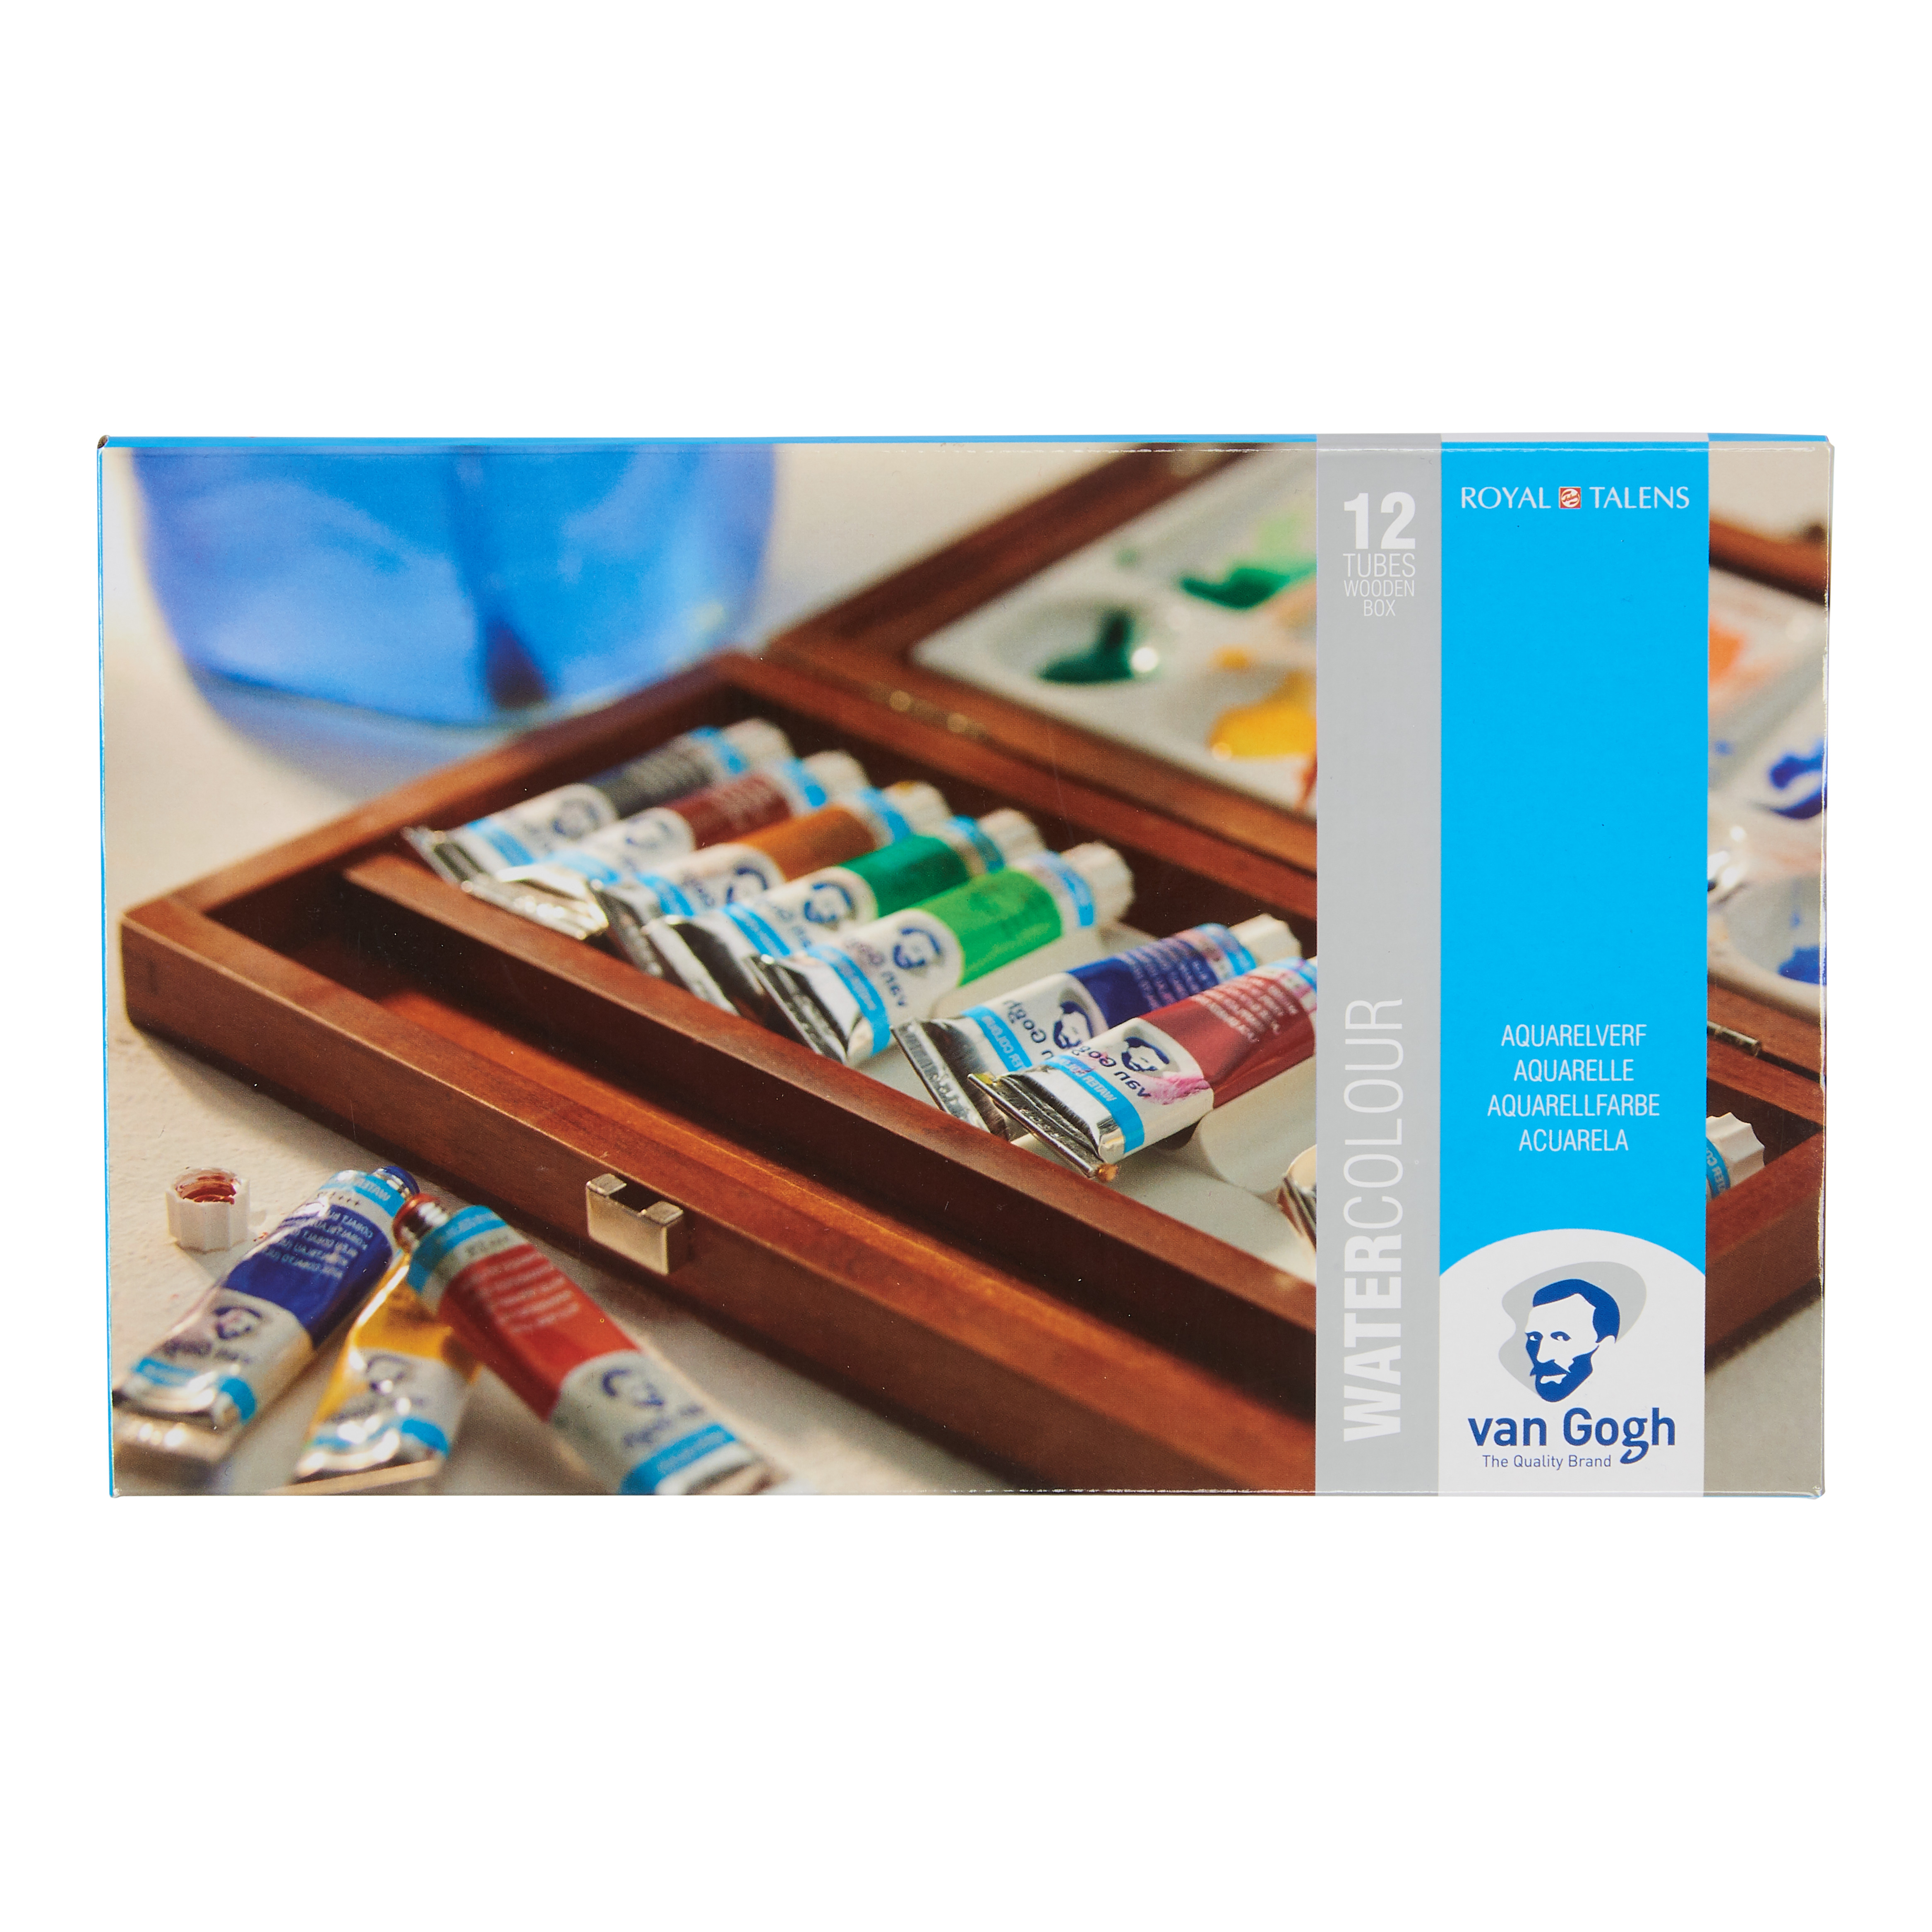 Van Gogh Water Colour Wooden Box Set with 12 Colours in 10ml Tube + 3 Accessories